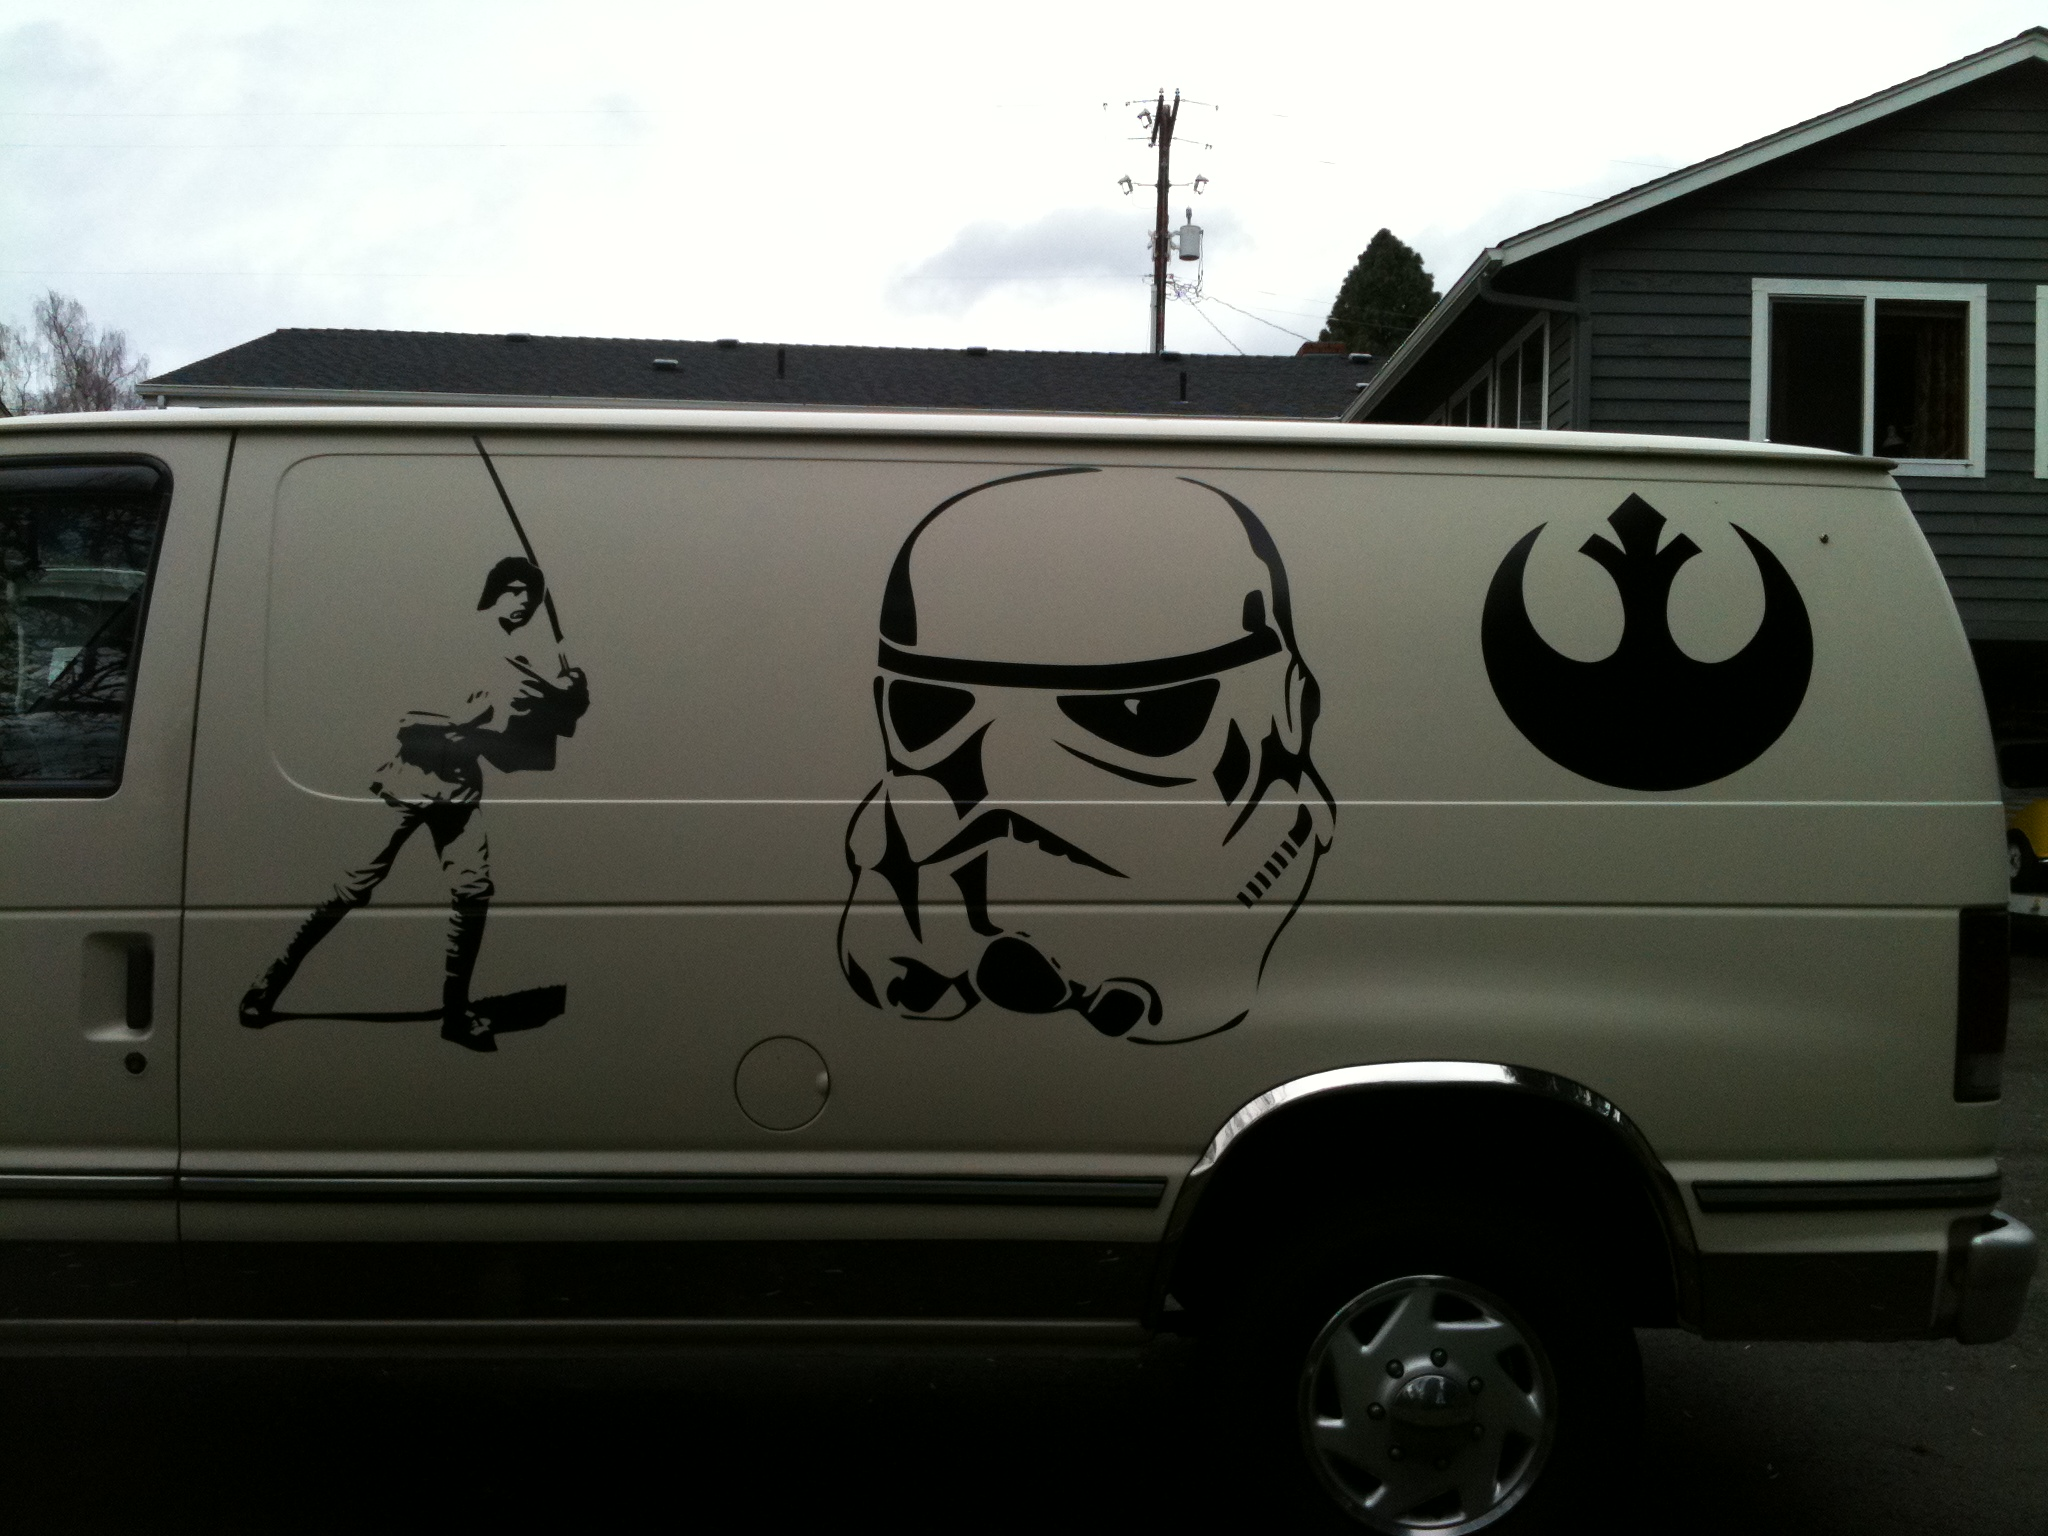 star wars van 001.JPG